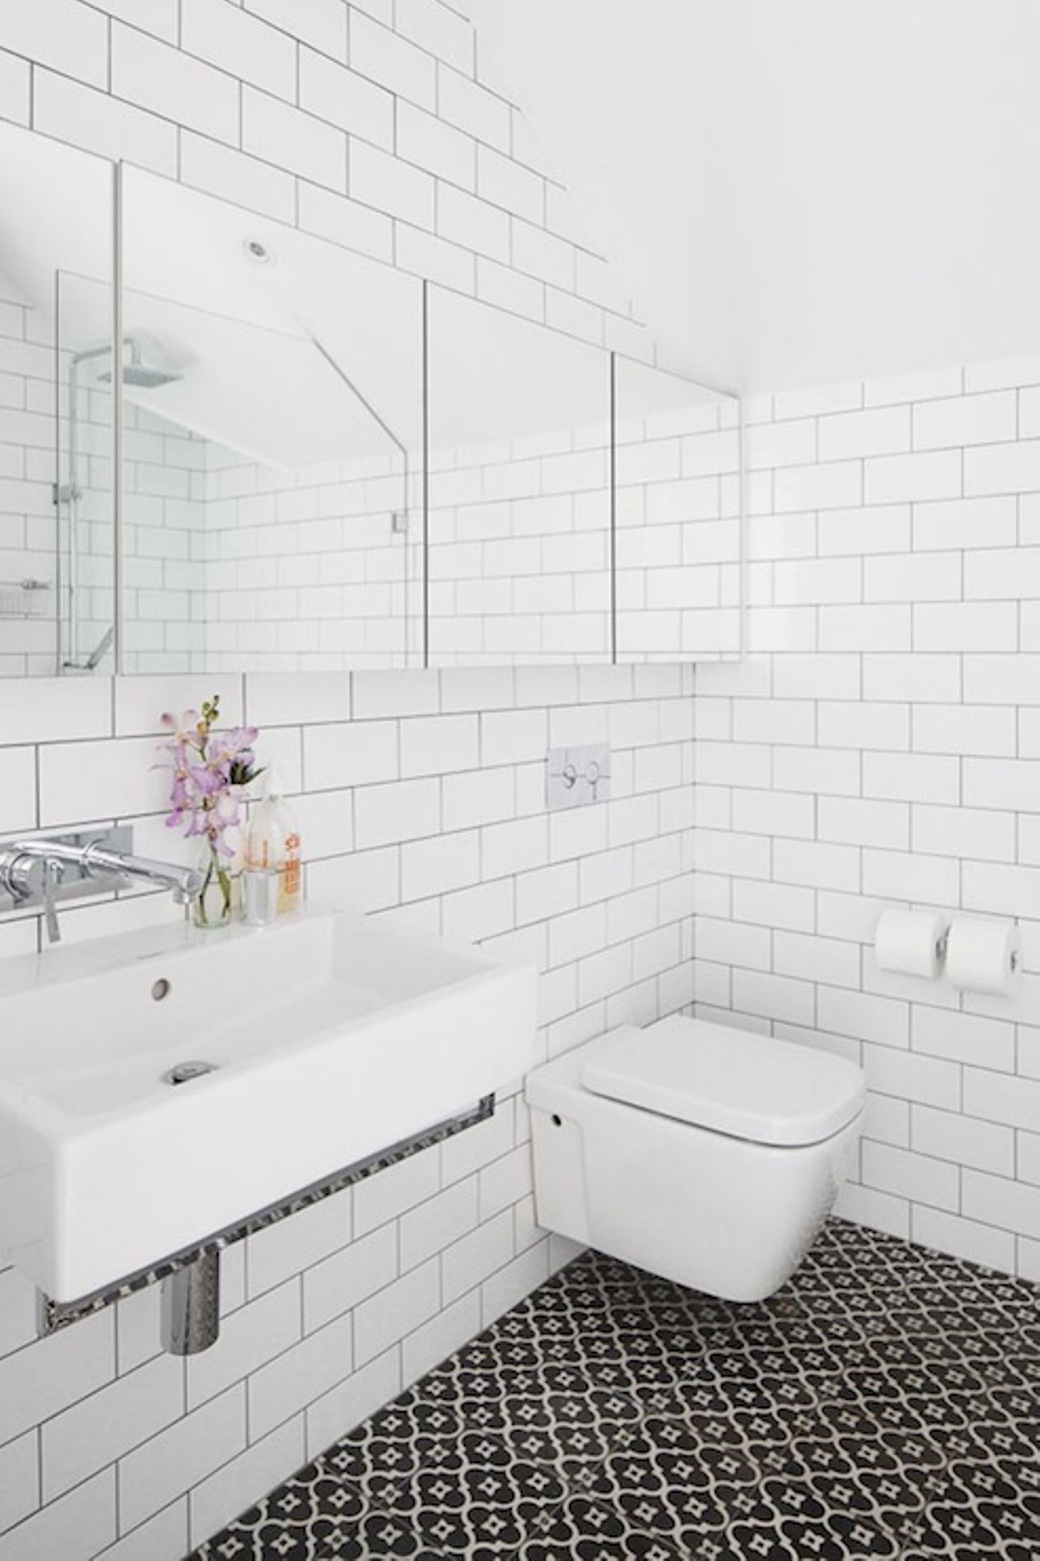 Captivating Interior Bathroom Using White Wall Tile also Sink and Toilet